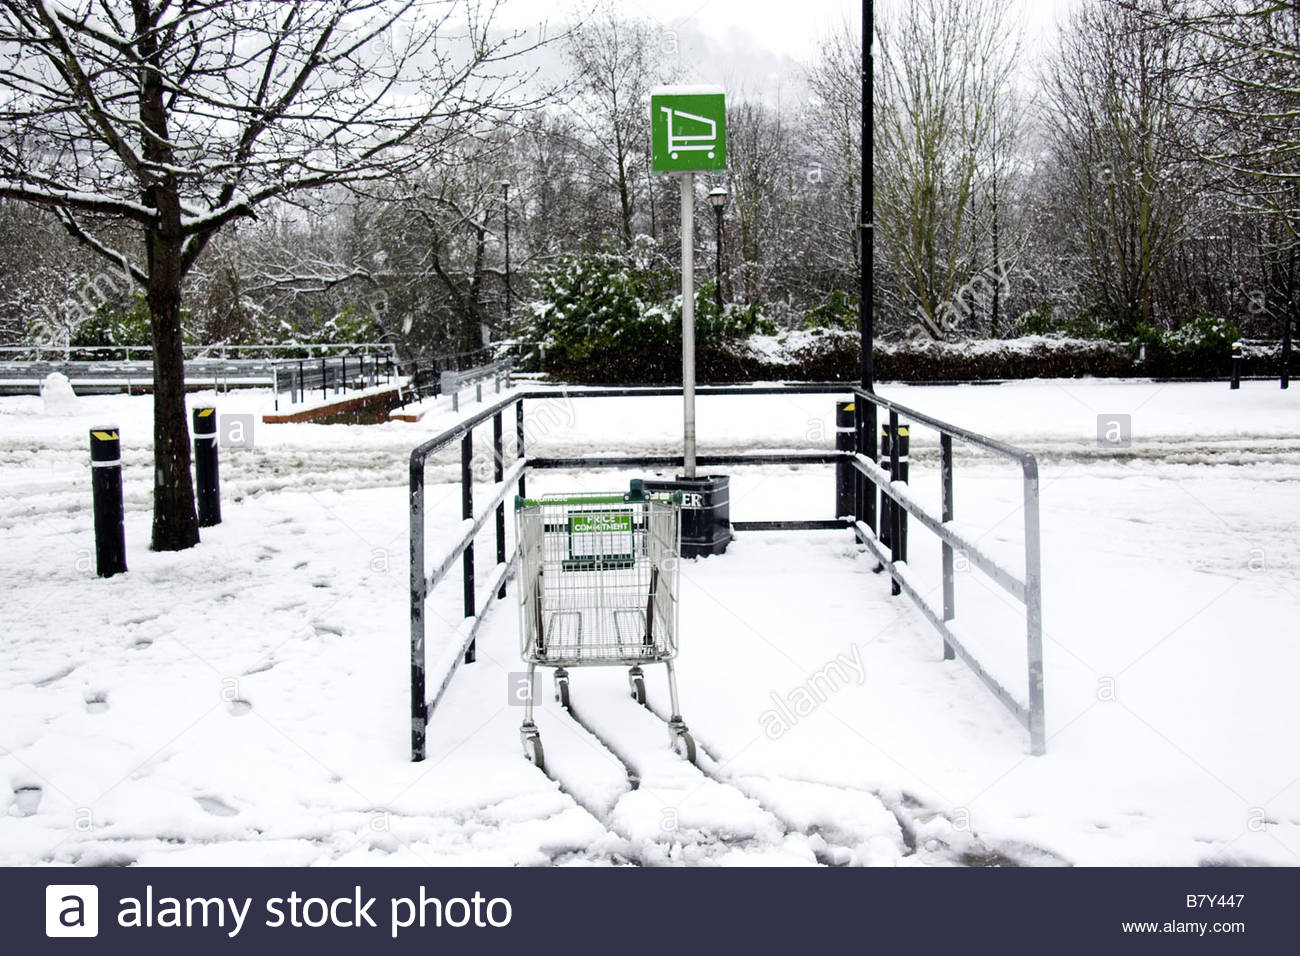 Lone shopping trolley in supermarket car park during bad weather, UK - Stock Image